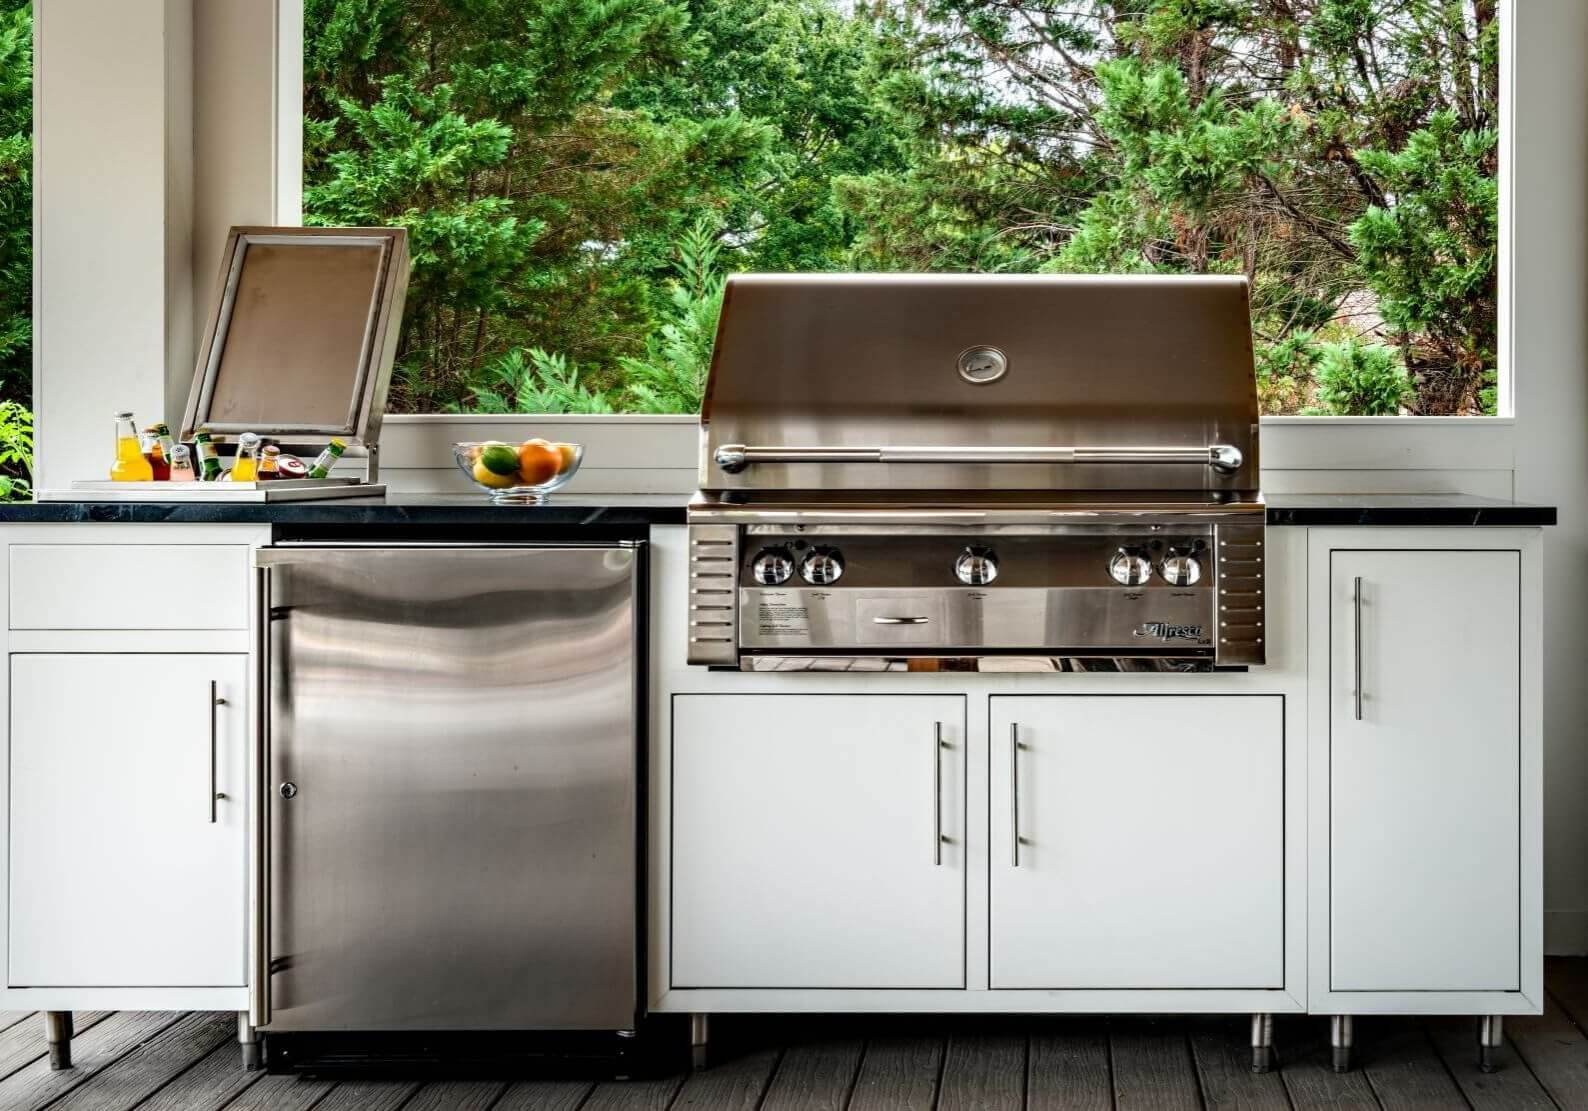 outdoor aluminum kitchen cabinet for an outdoor kitchen on a patio